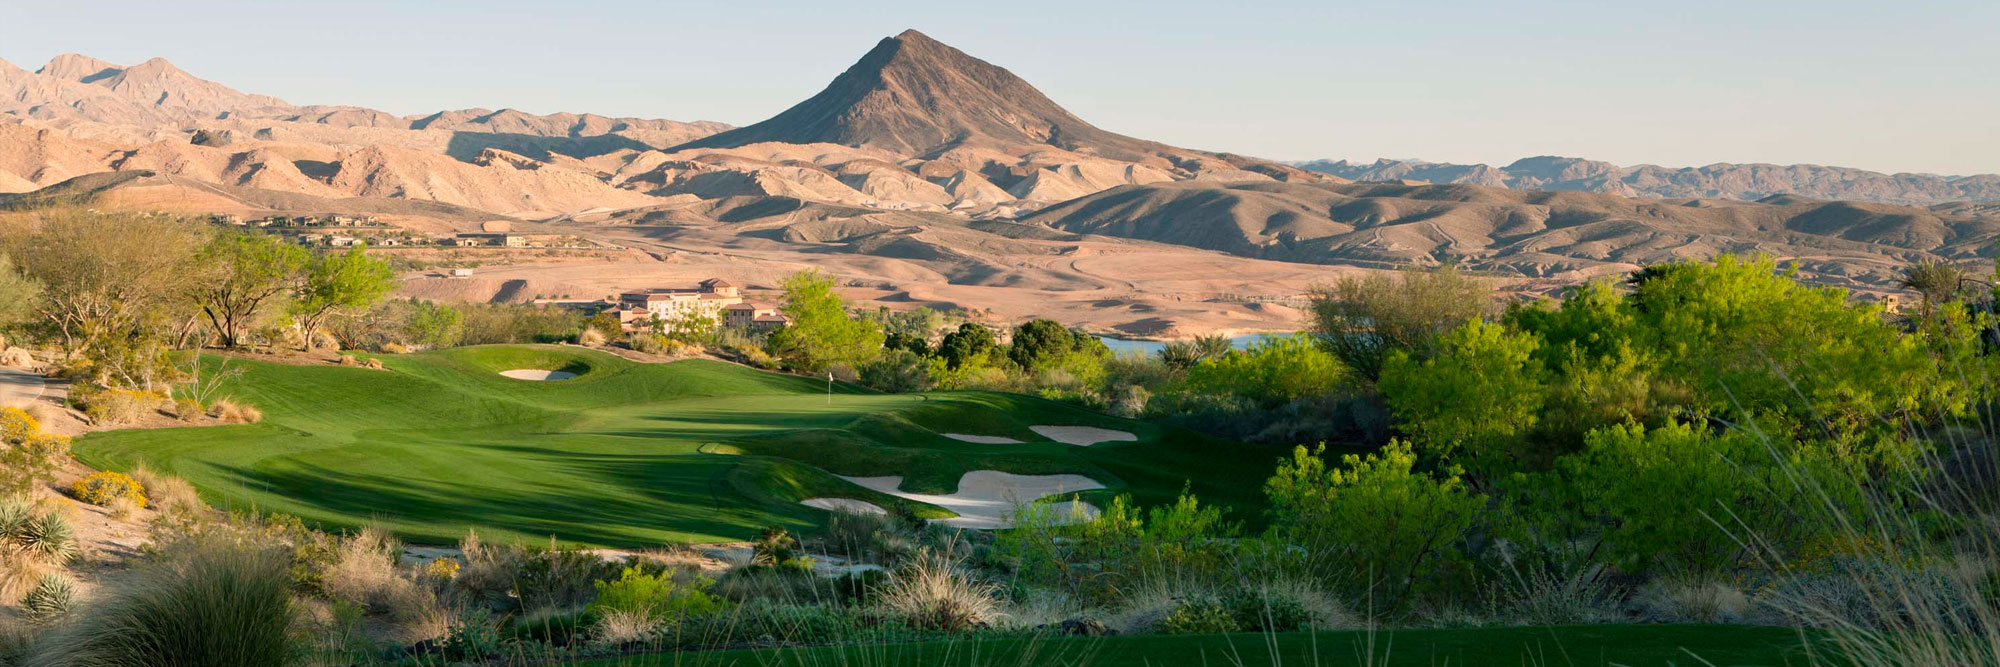 Las Vegas, NV: Westin Lake Las Vegas - Reflection Bay / South Shore / Dragon Ridge - $199 per person, per day!